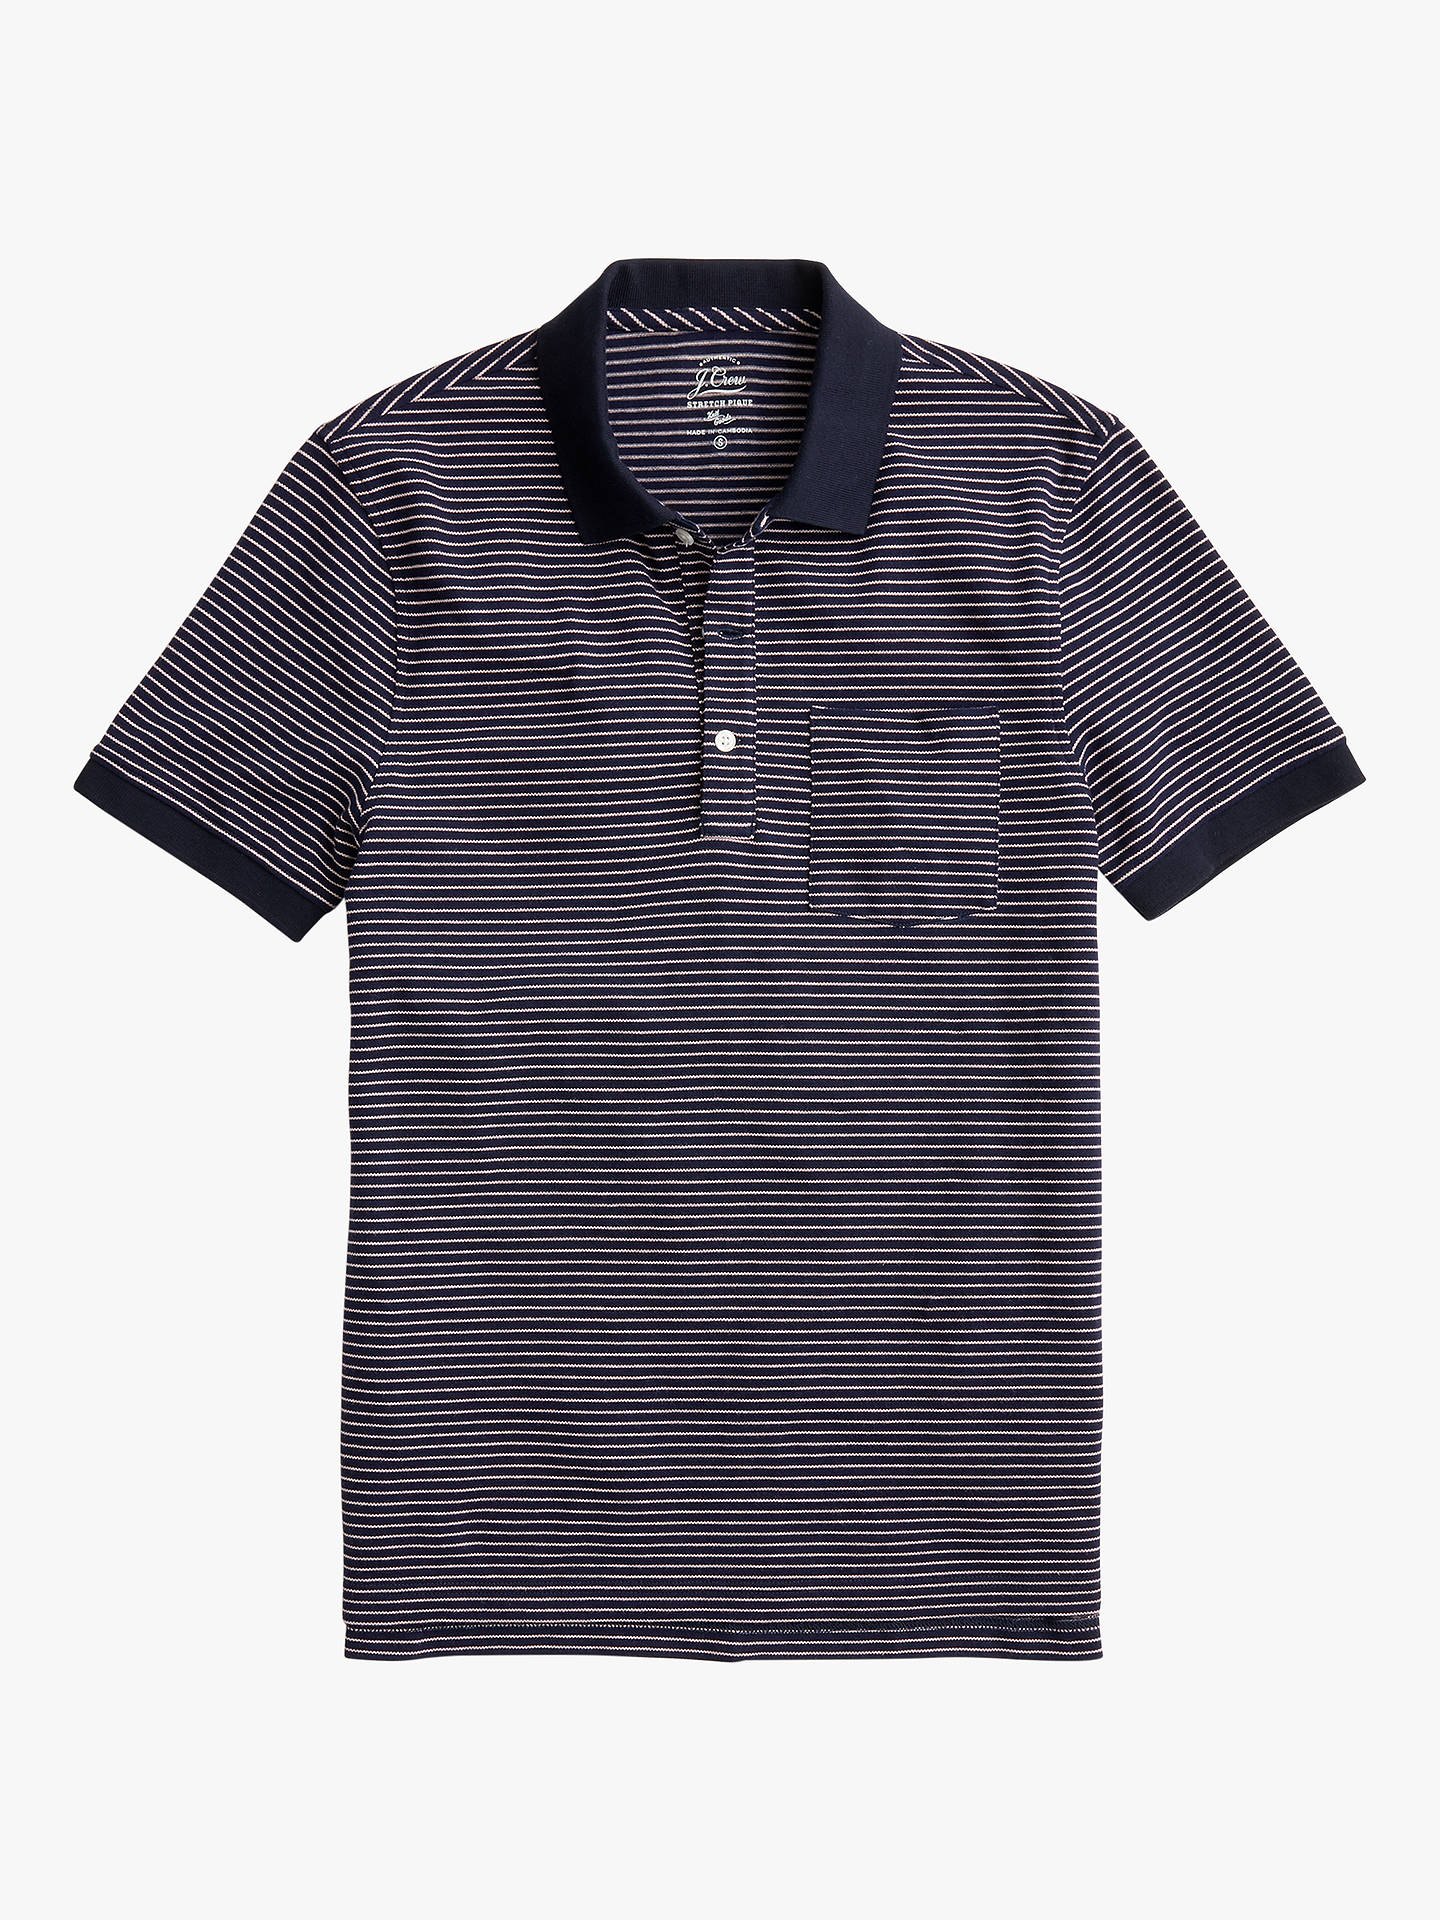 91aa02f3 Buy J.Crew Stretch Pique Stripe Short Sleeve Polo Shirt, Navy Quartz, XL